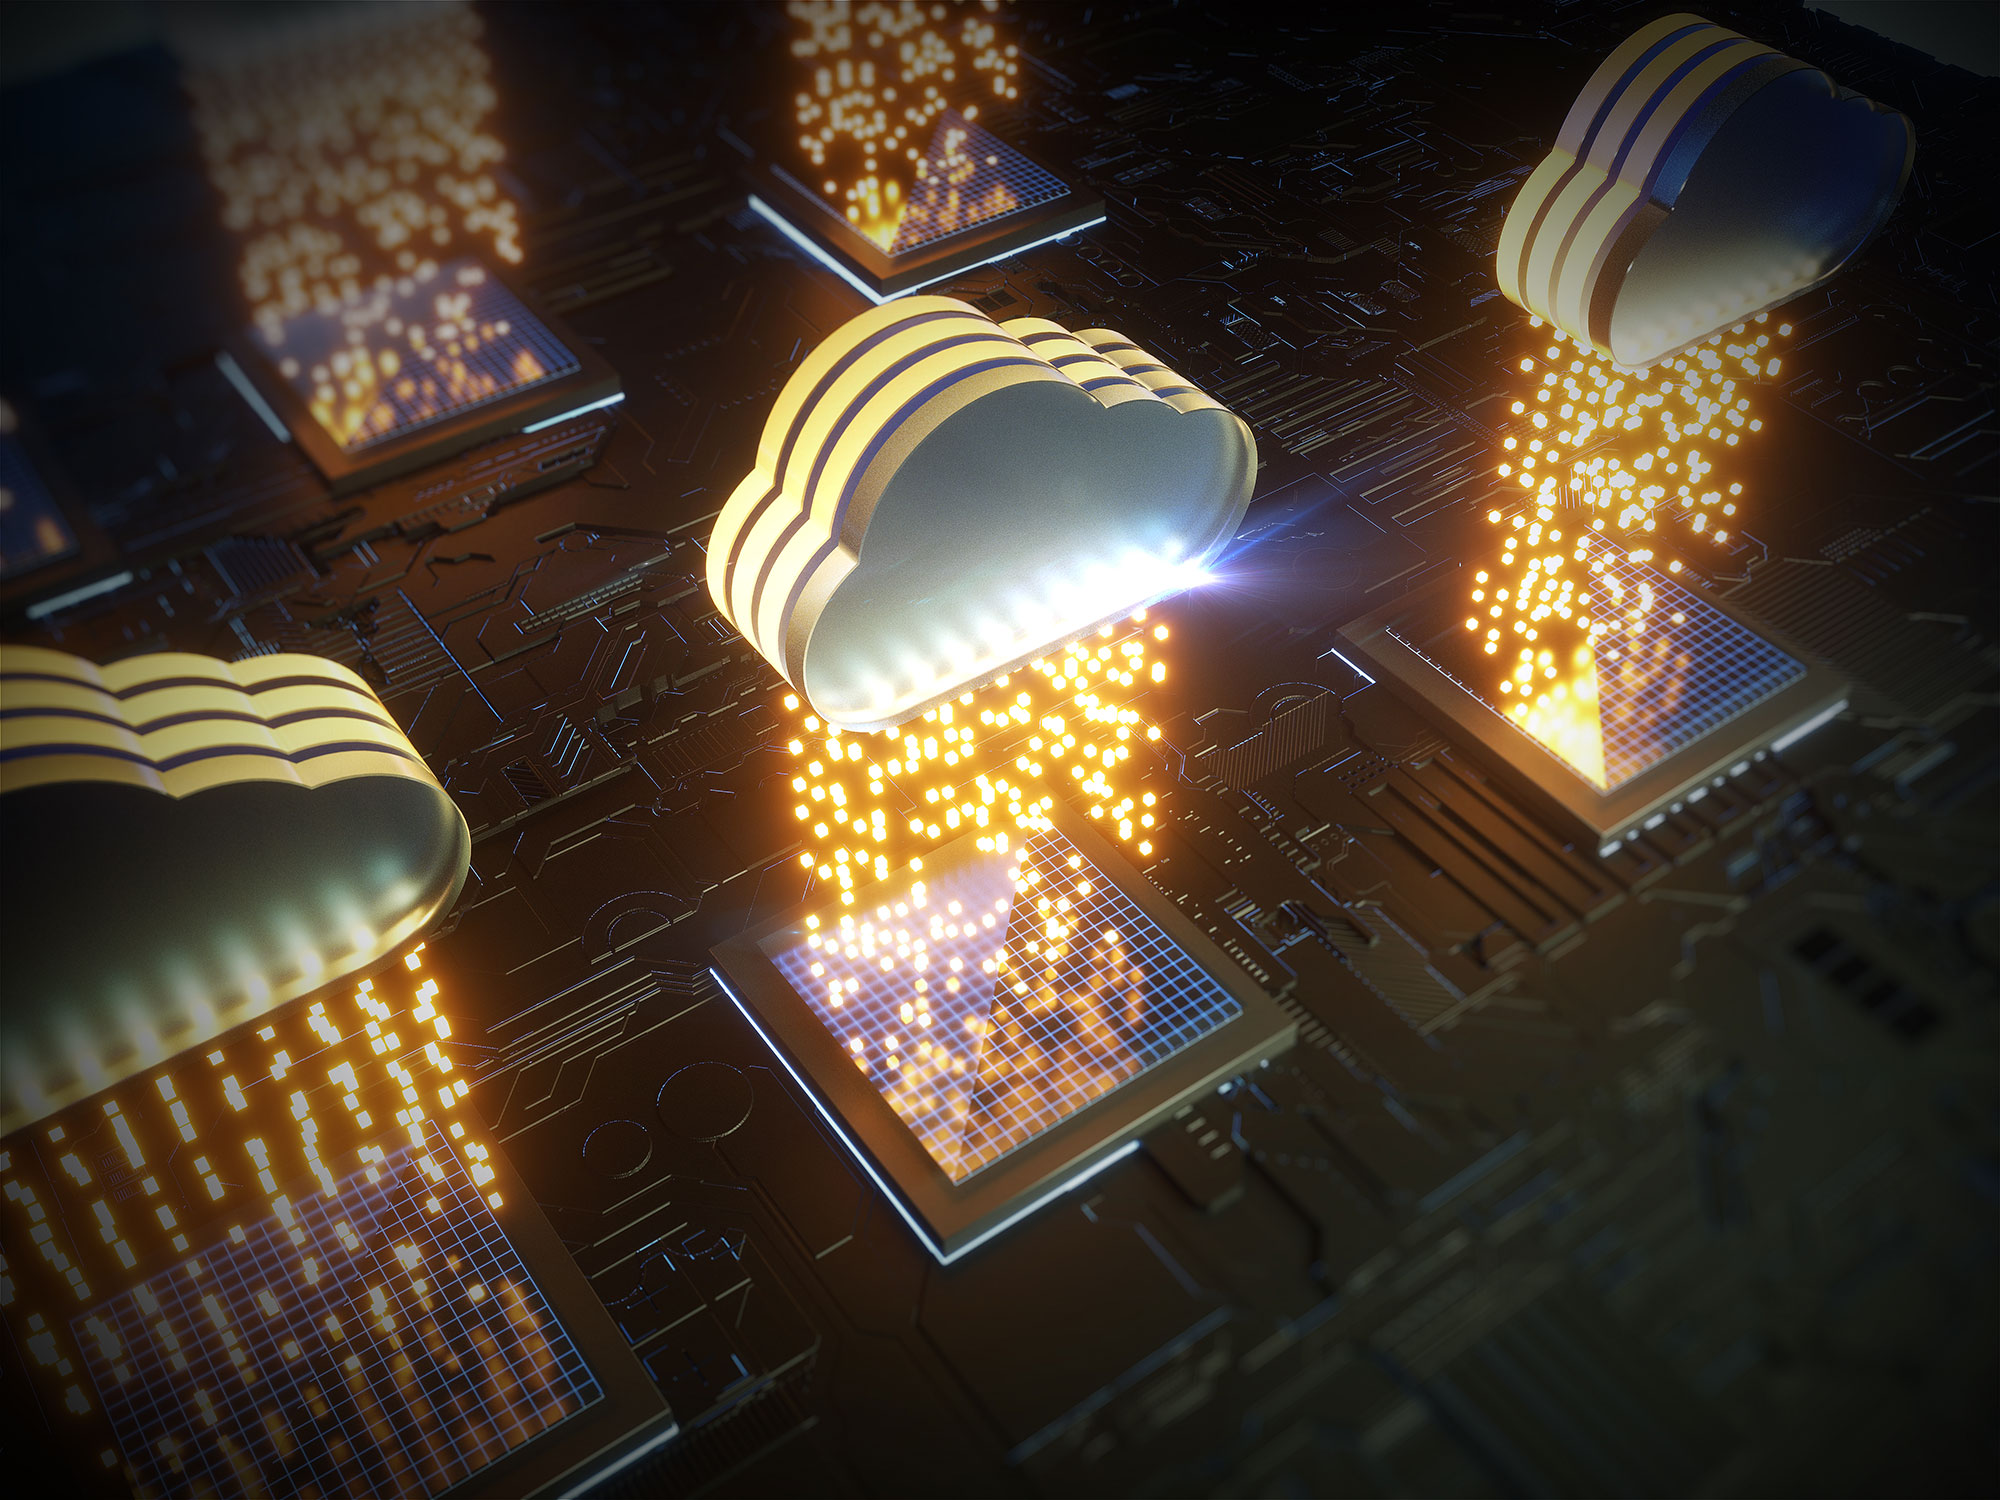 cloud-computing-rain-light-on-silicon-chips-circuit-board